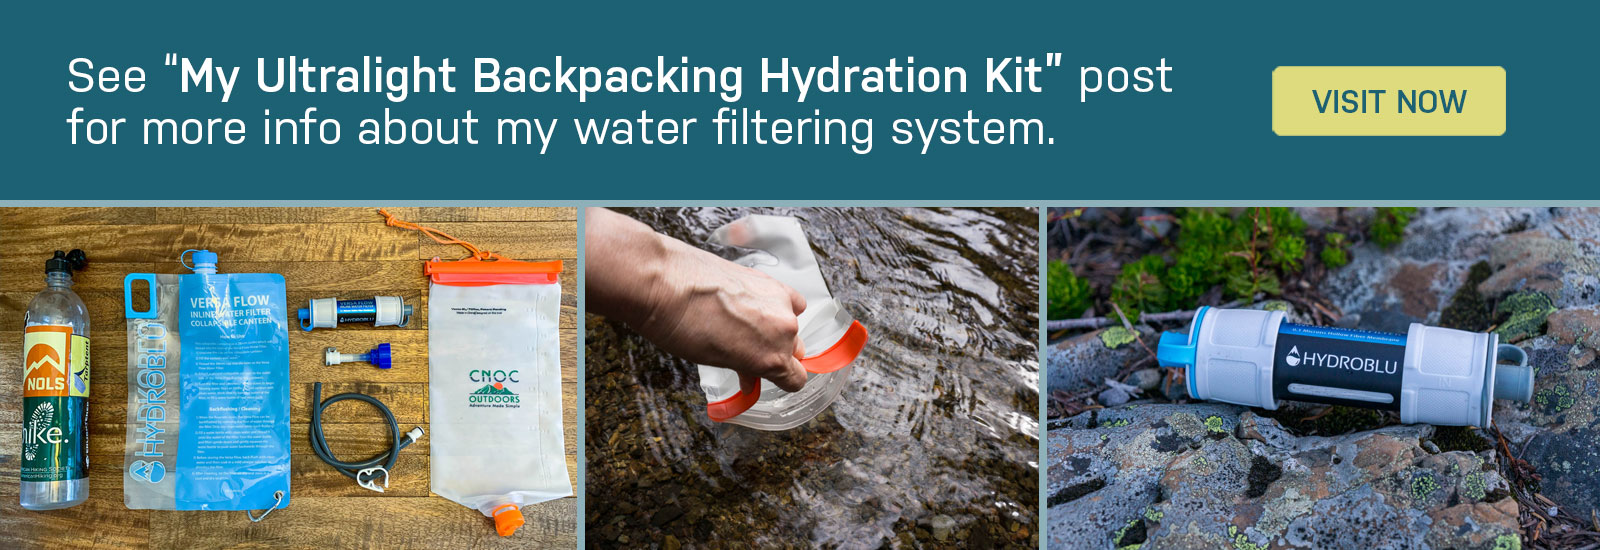 my ultralight backpacking hydration kit